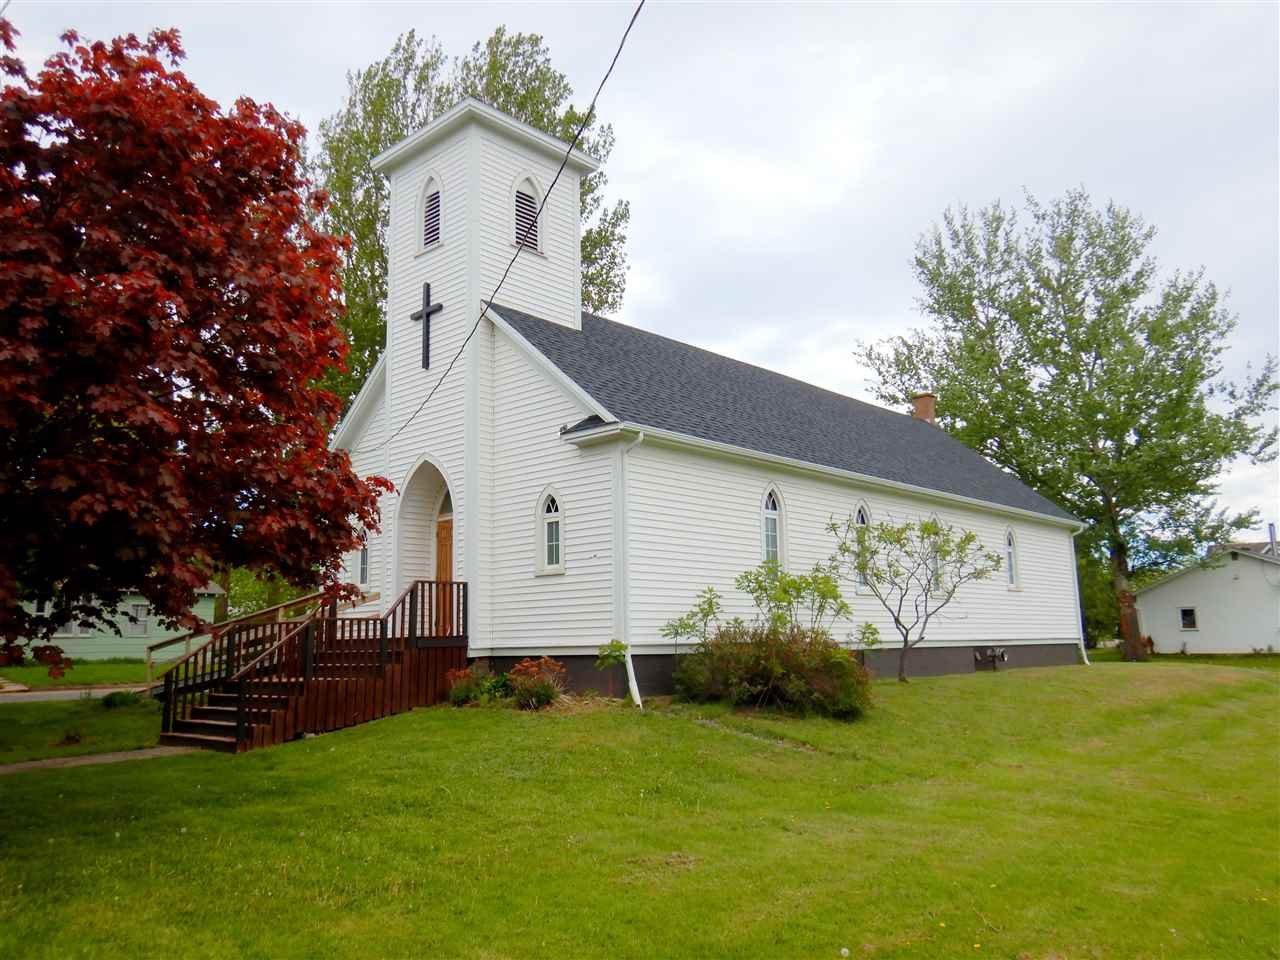 Main Photo: 44 Russell Street in Pugwash: 102N-North Of Hwy 104 Residential for sale (Northern Region)  : MLS®# 202011428